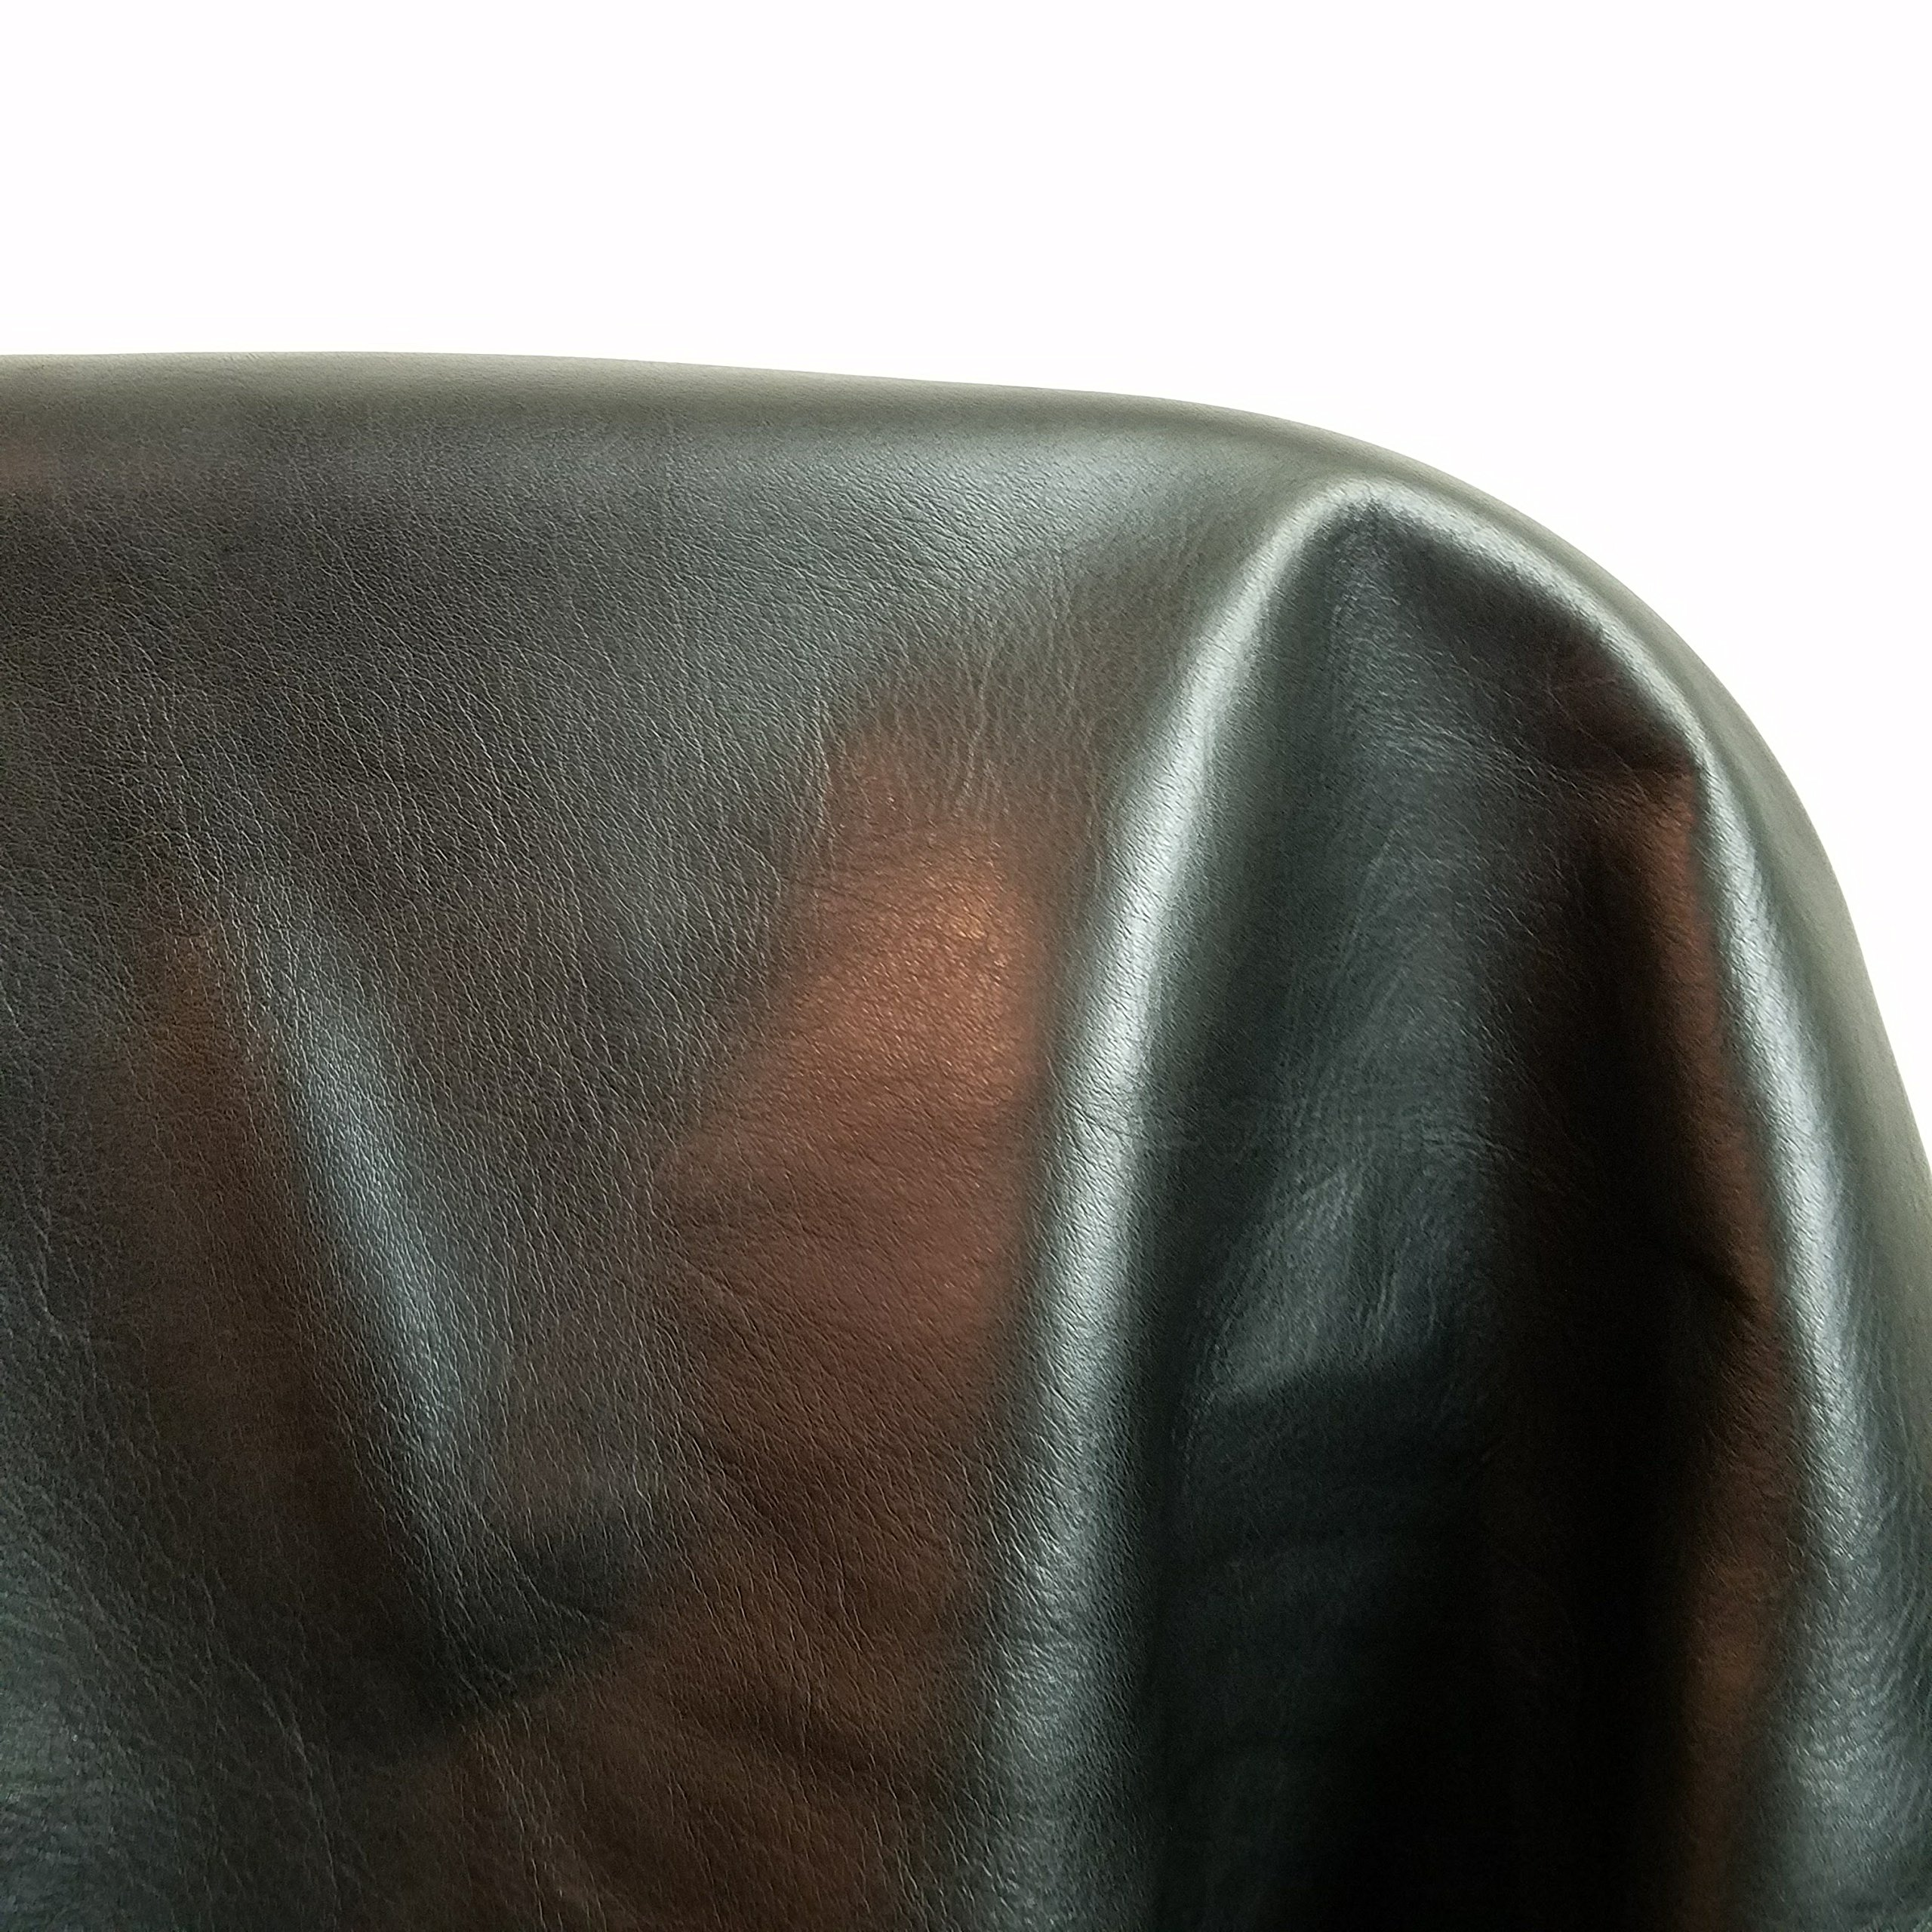 NAT Leathers Black Butter Soft Aniline Light Weight Smooth Fullgrain Nappa 18-22 Square Feet 2.0-2.5 oz Nappa Soft Upholstery Handbag Cowhide Genuine Cow Leather Hide Skin (About 30'' x 60'')